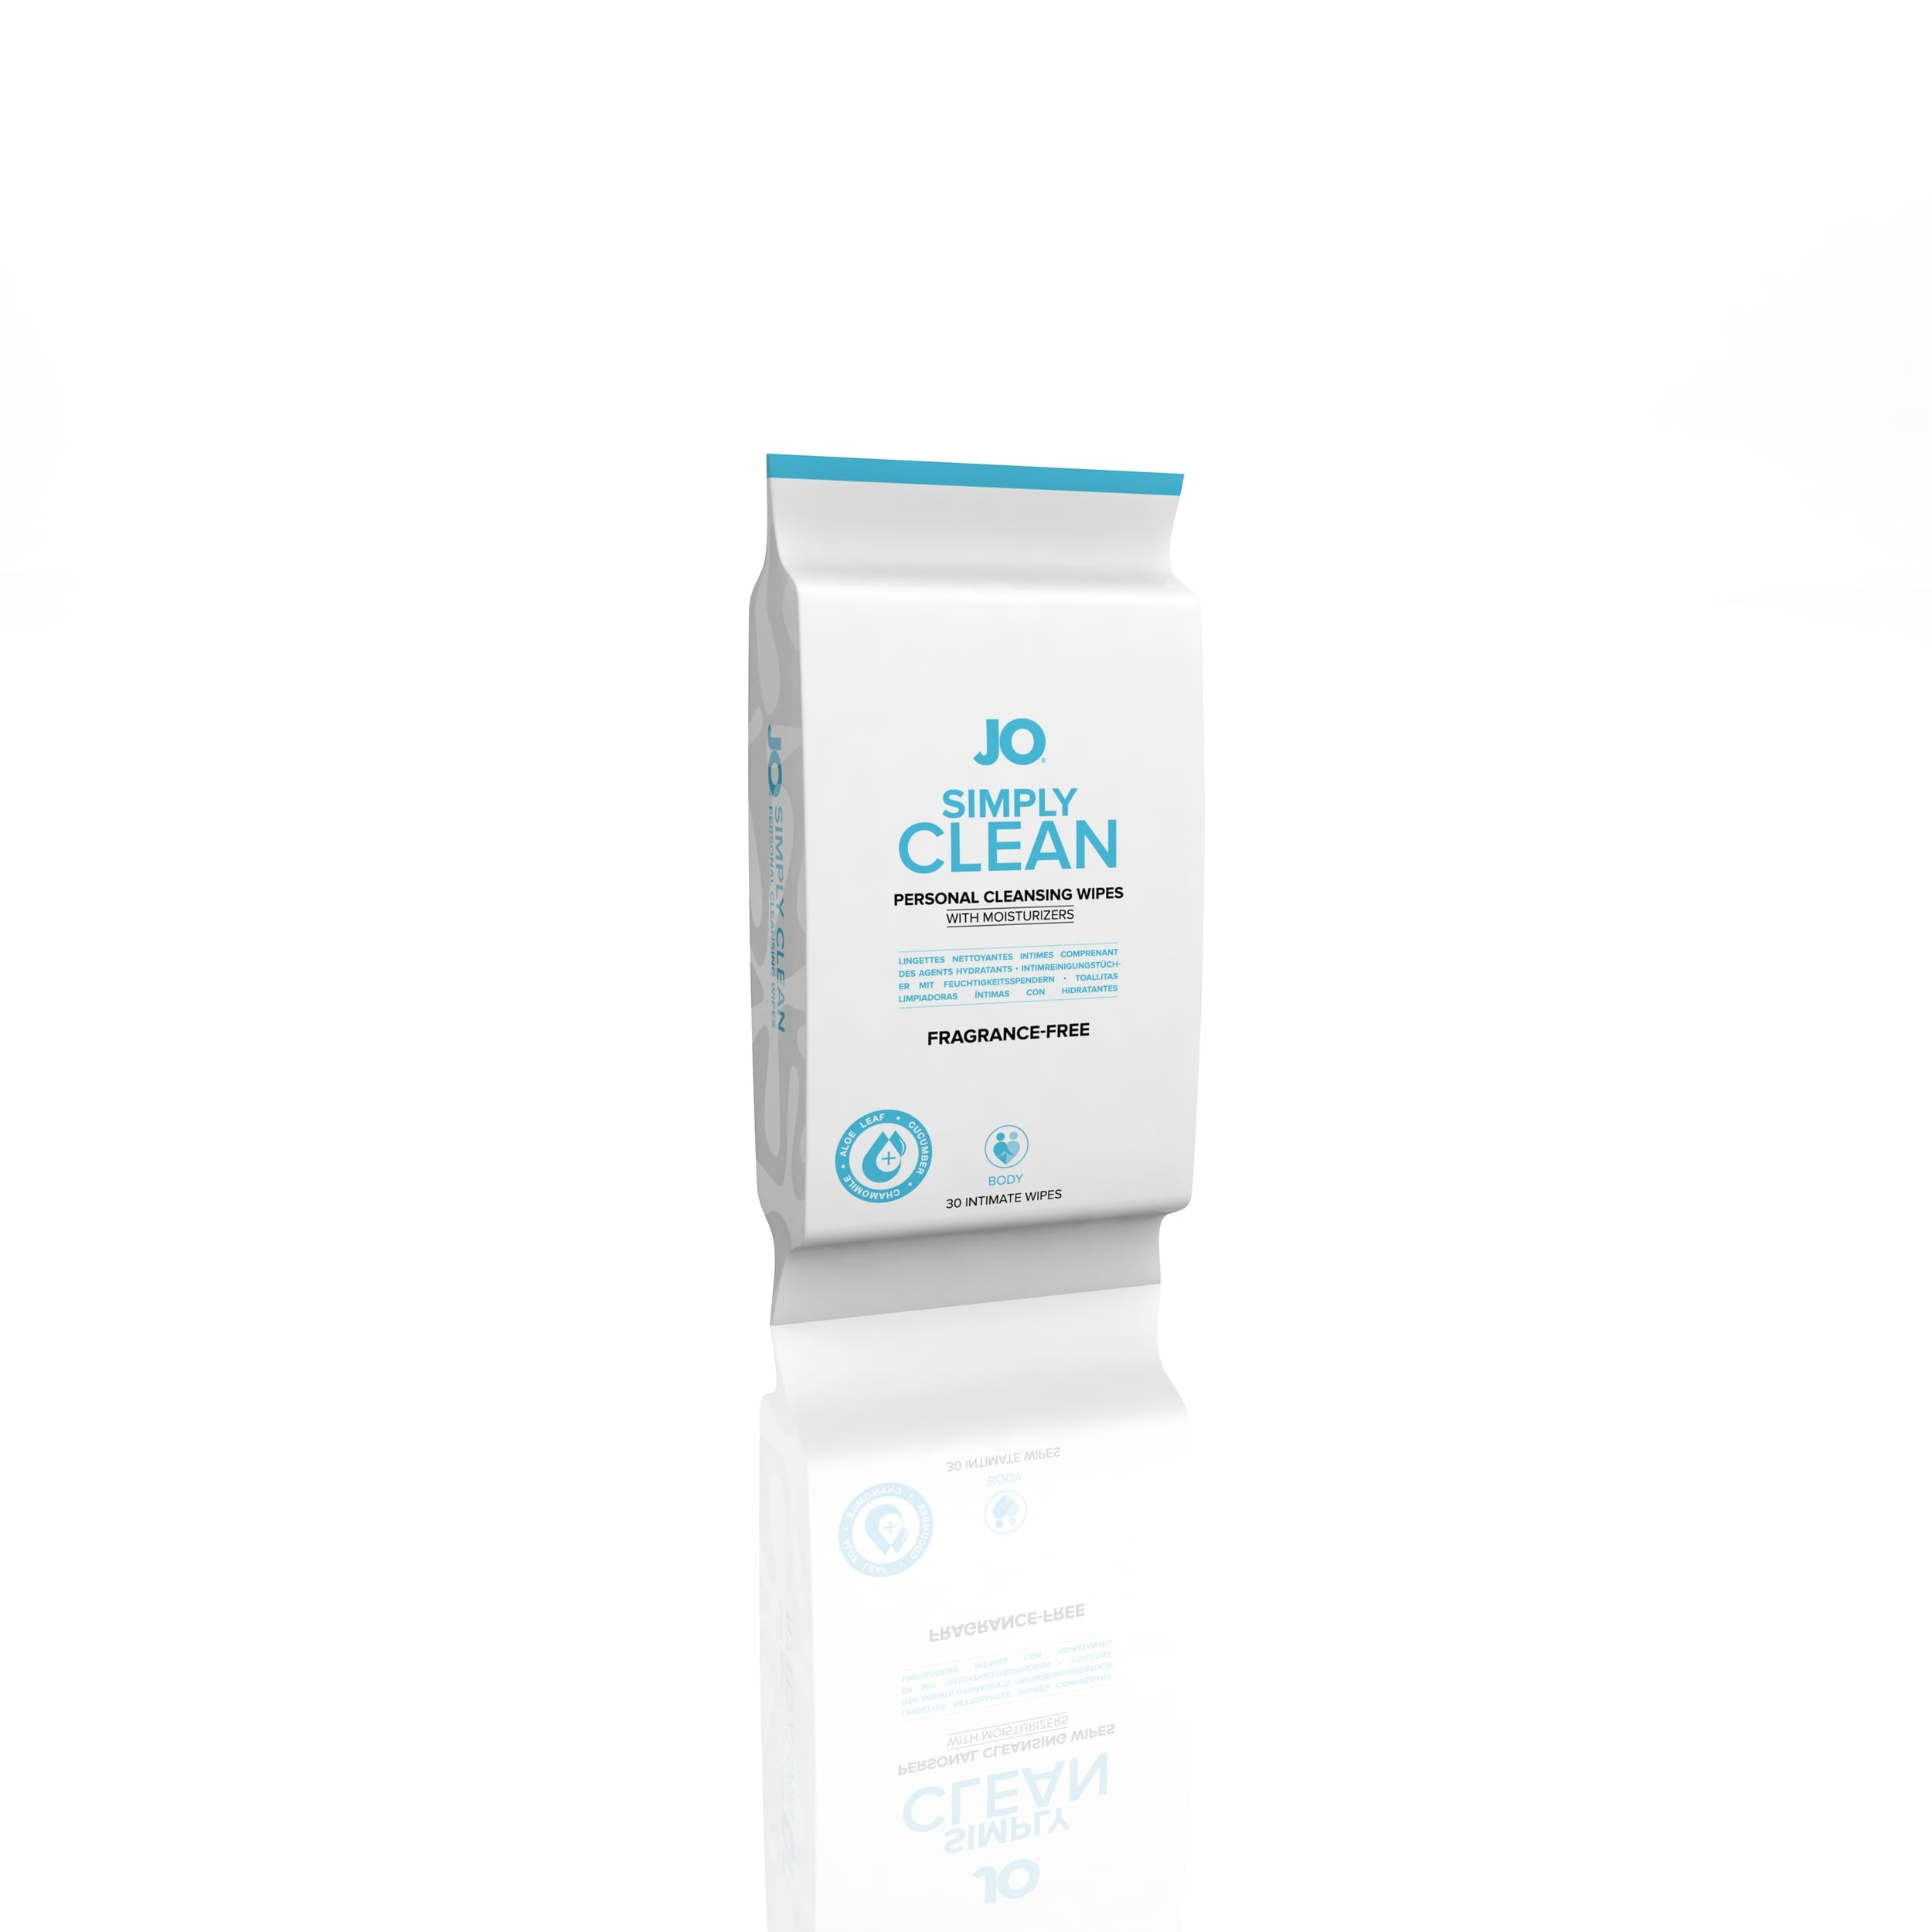 30564 - JO PERSONAL CLEANSING WIPES - SIMPLY CLEAN - 30 pack ISO.jpg